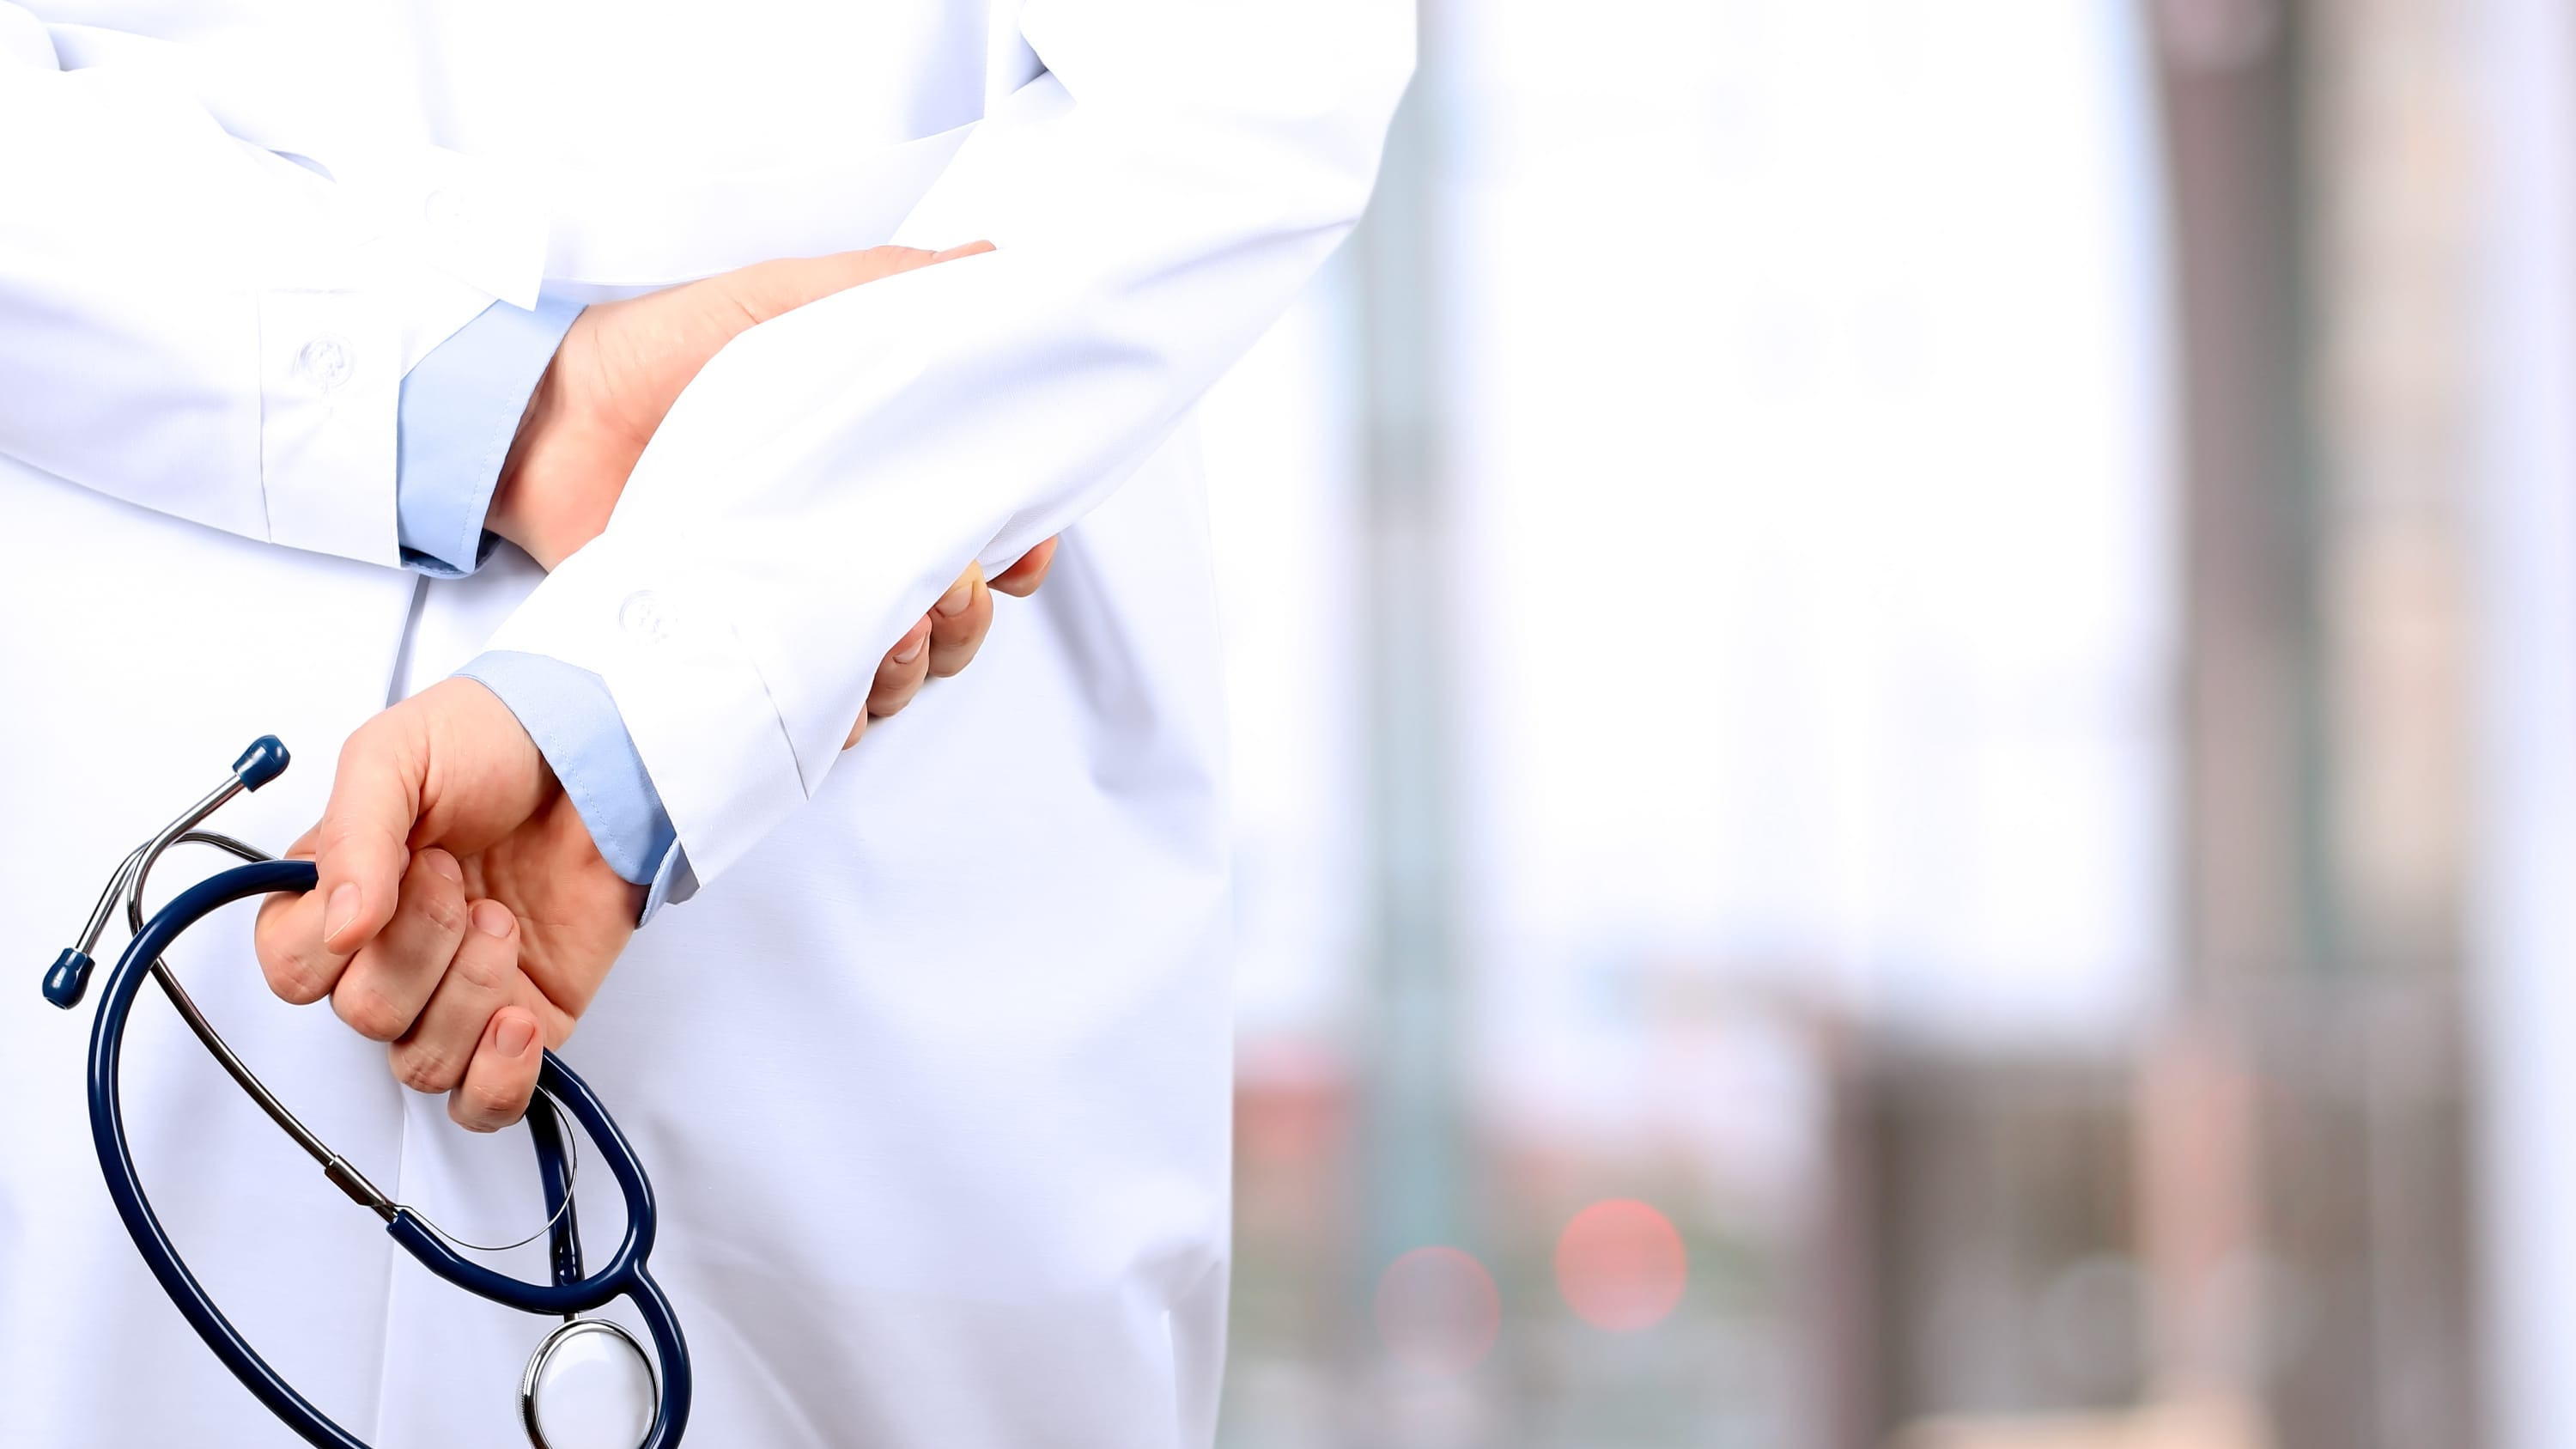 A doctor holds a stethoscope and helps patients with leukemia.